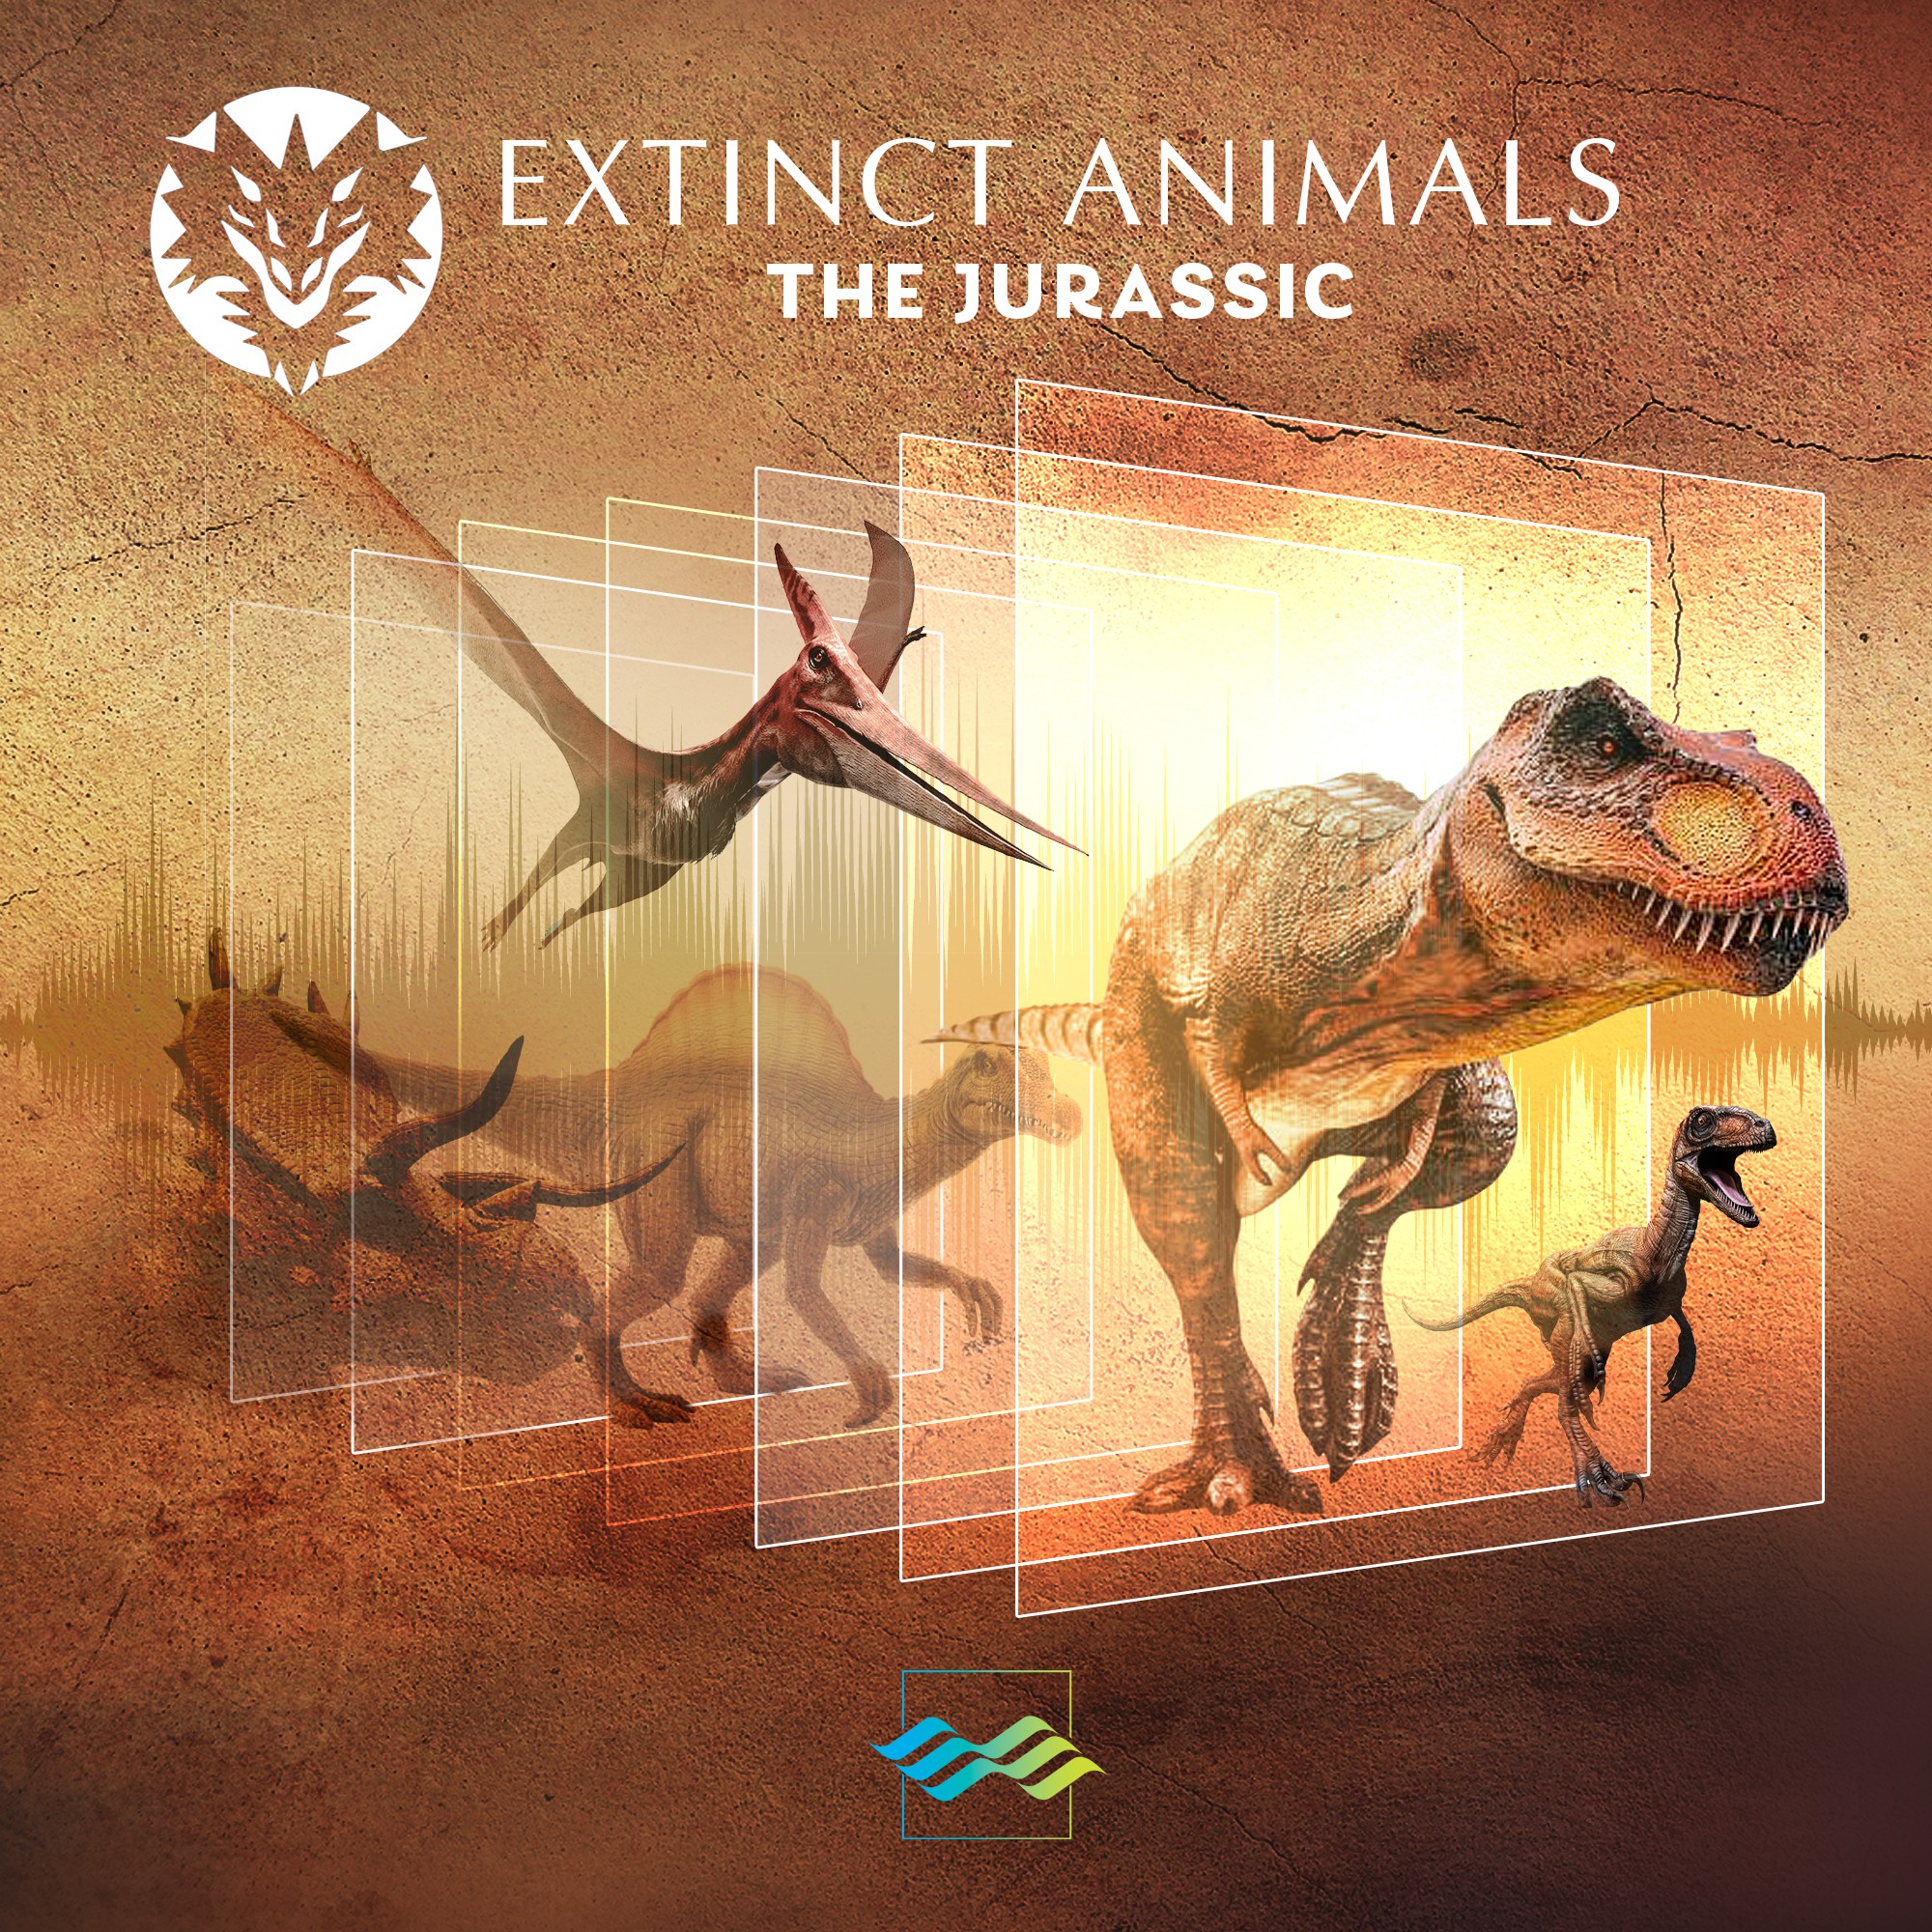 Unique Sound Library of 'Extinct Animals' needs a Polished Visual Cover!